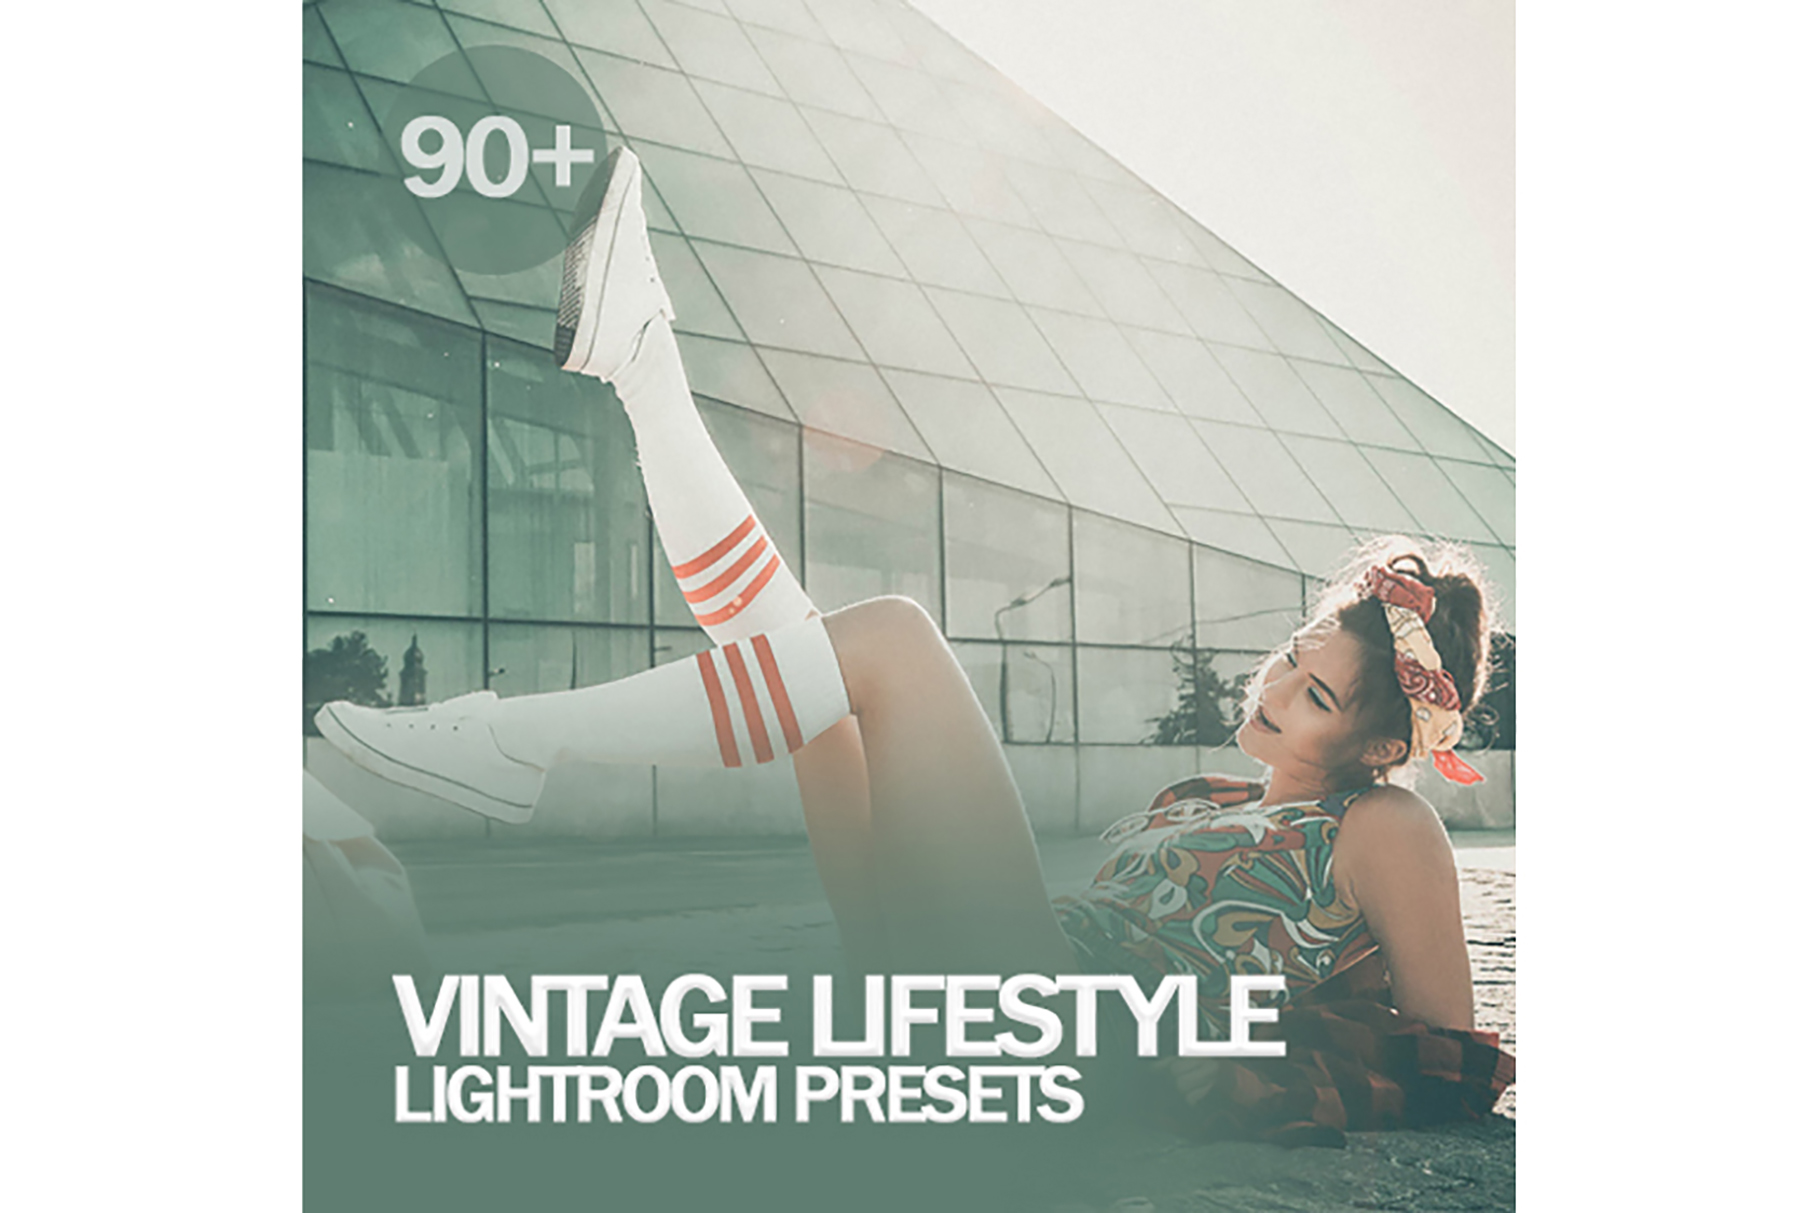 90 Vintage Lifestyle Lightroom Presets example image 1